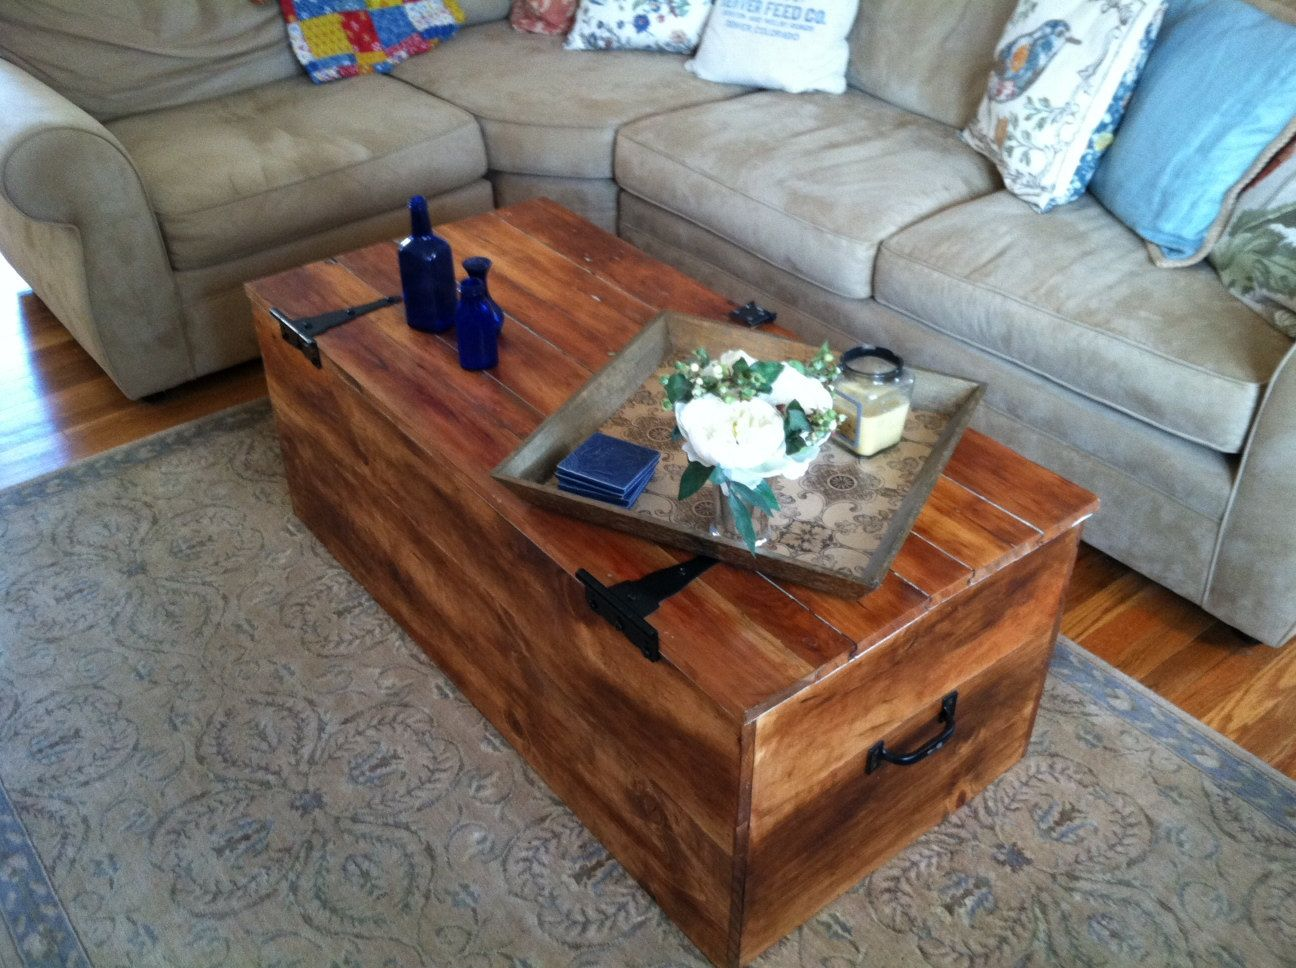 Wine Crate Coffee Table |Wooden Crate Coffee Table